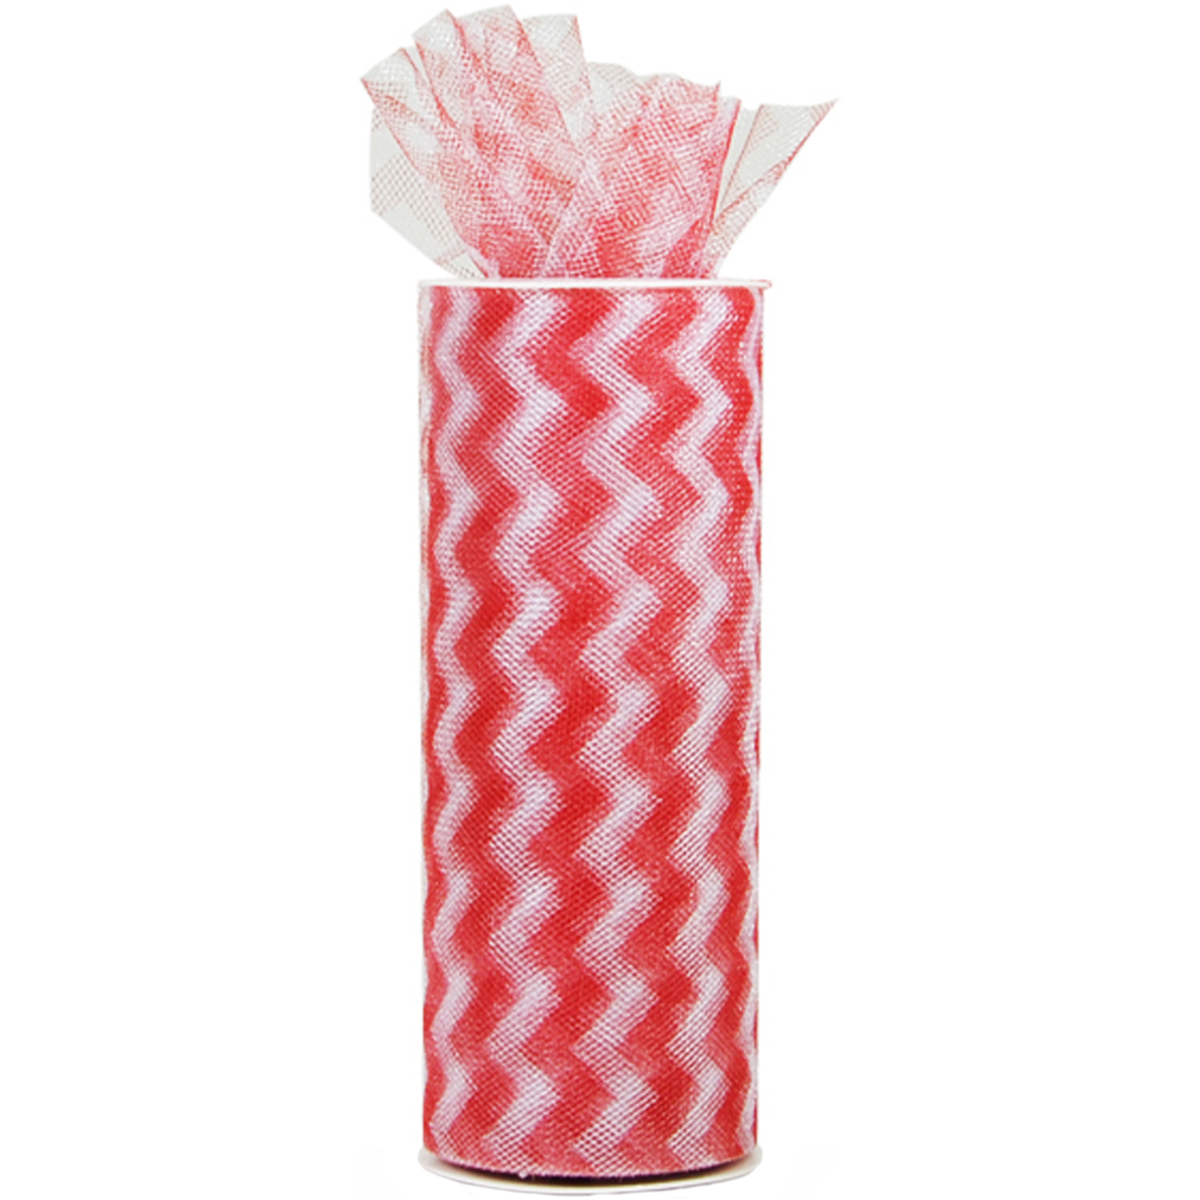 "Chevron Zig Zag Printed Tulle, 6"" x 10 yd Spool, Red"